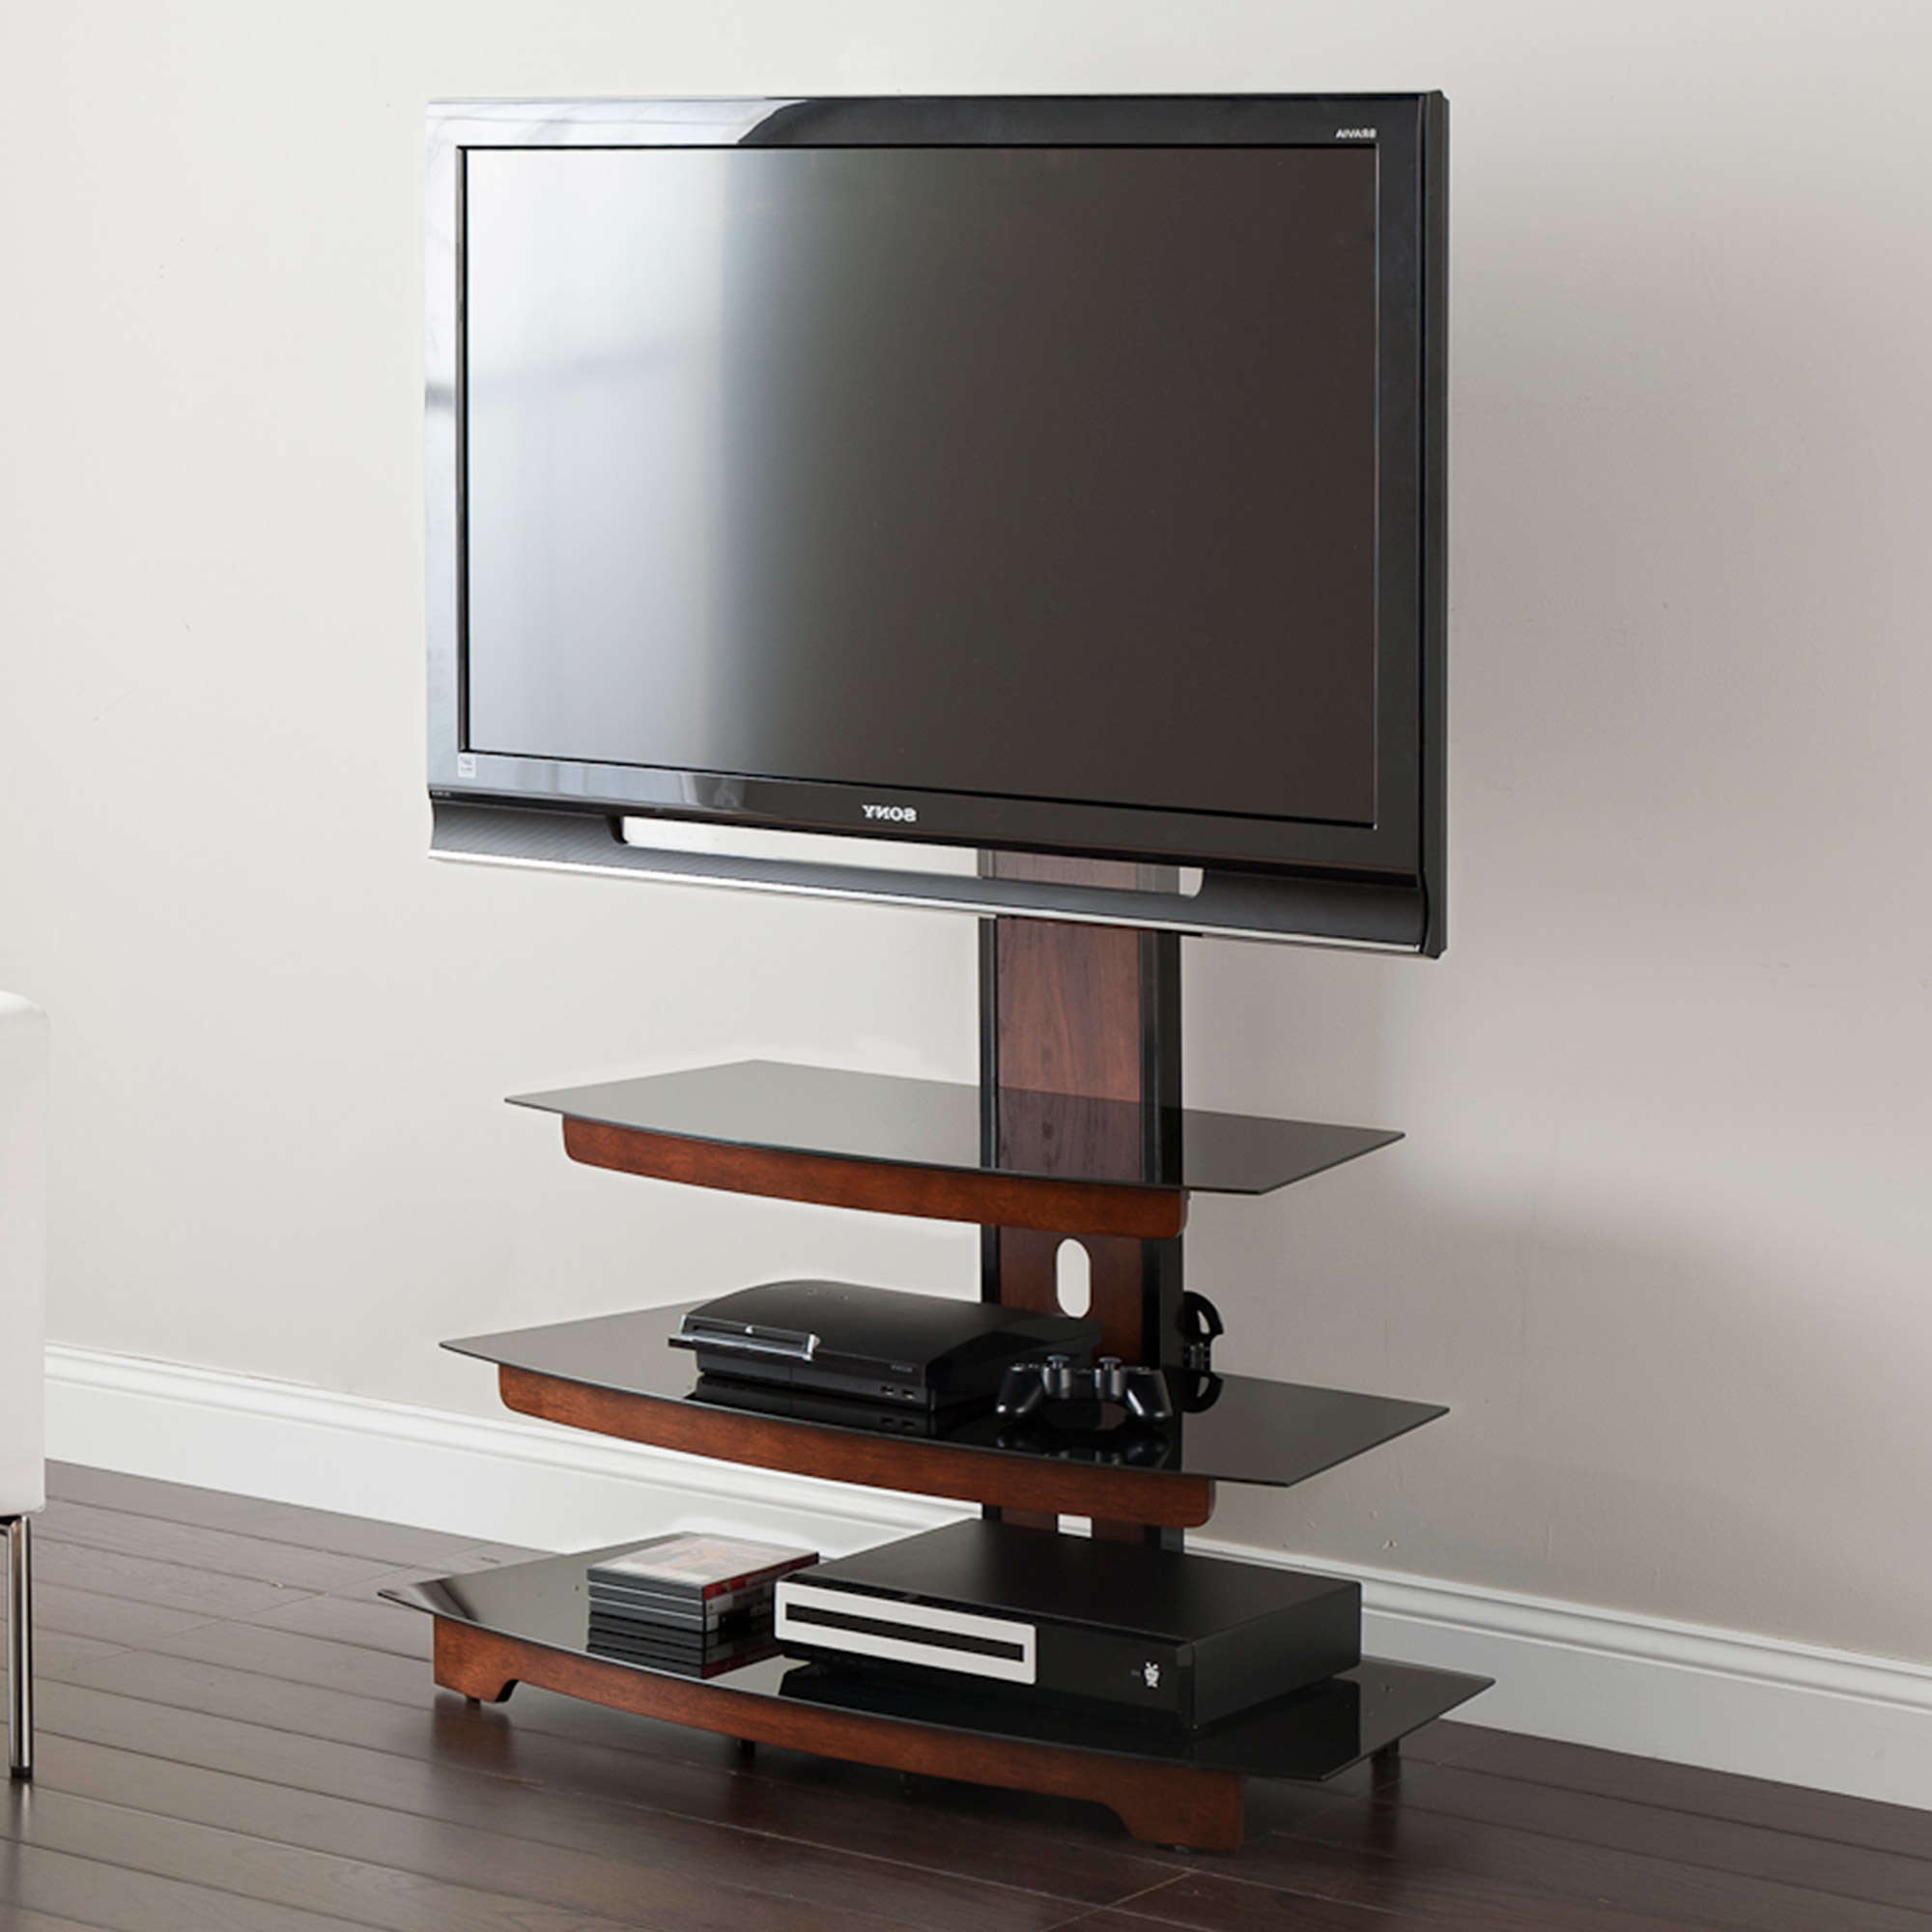 """Well Liked Aaliyah Floating Tv Stands For Tvs Up To 50"""" With Whalen 3 Tier Television Stand For Tvs Up To 50"""", Perfect (View 5 of 25)"""